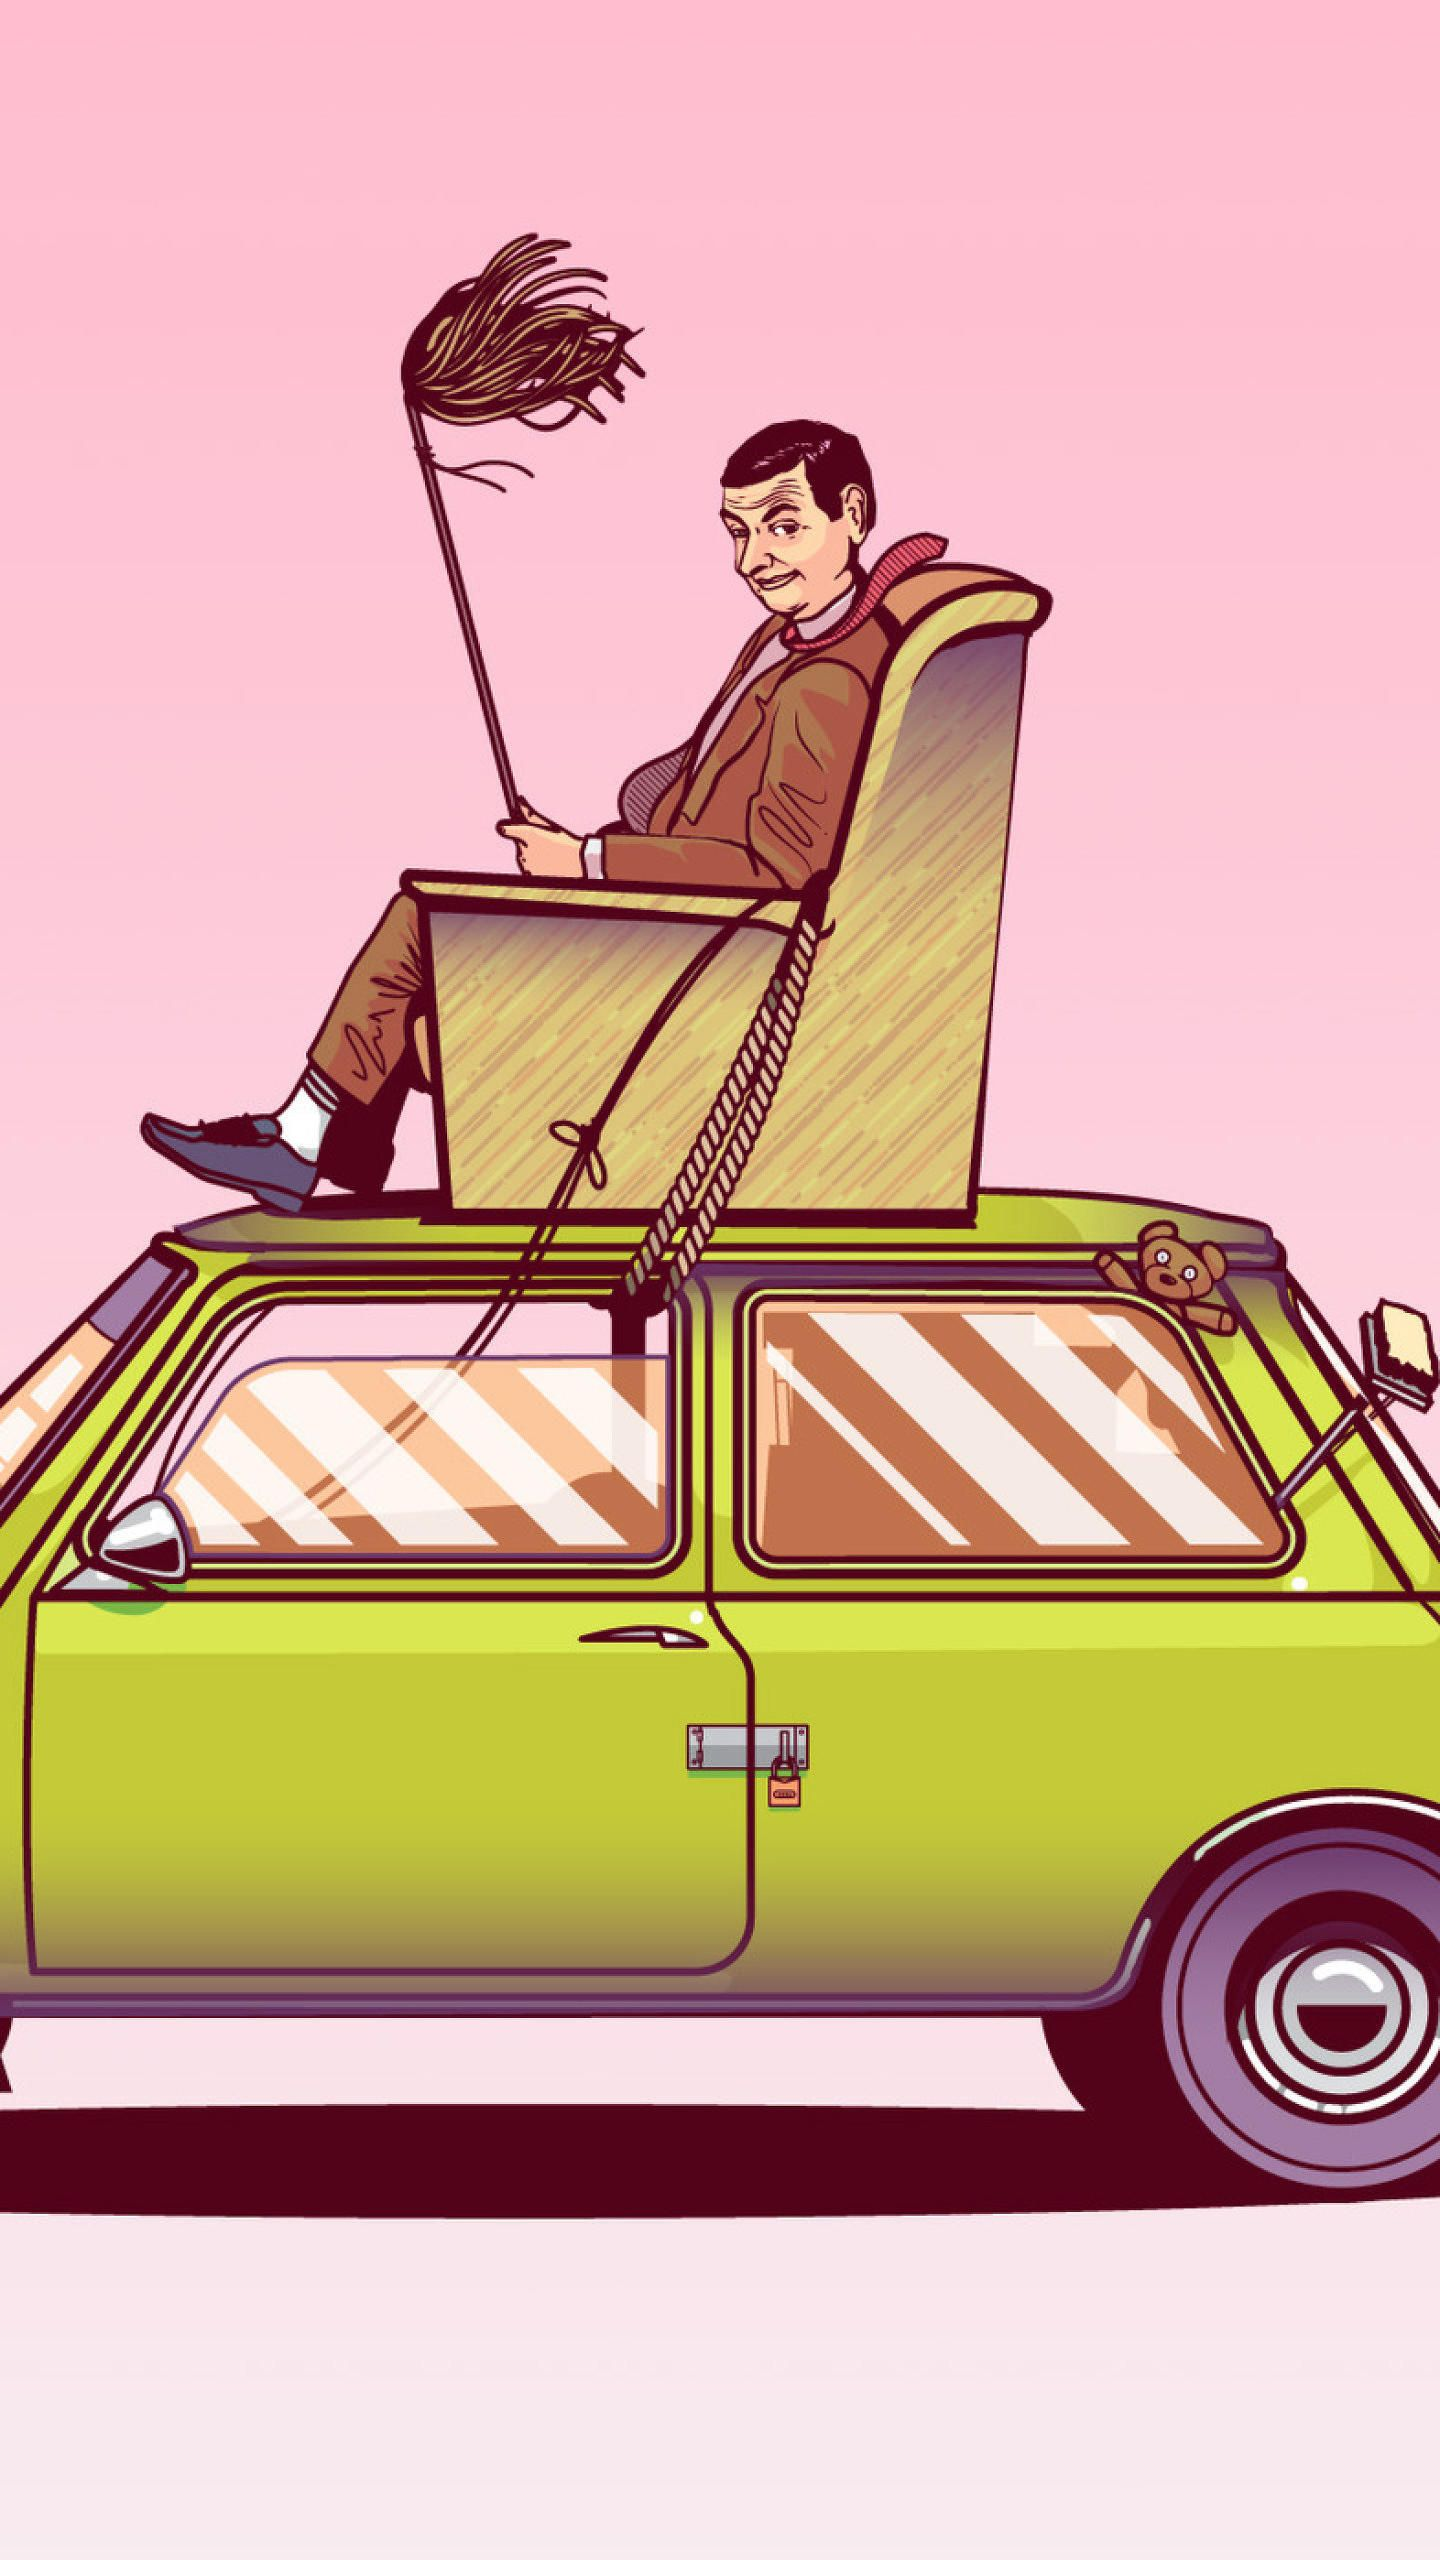 Mr Bean Sitting On Top Of His Car Vector Art Hd Funny Wallpapers Photos And Pictures Funny Wallpapers Vector Art Car Vector Art